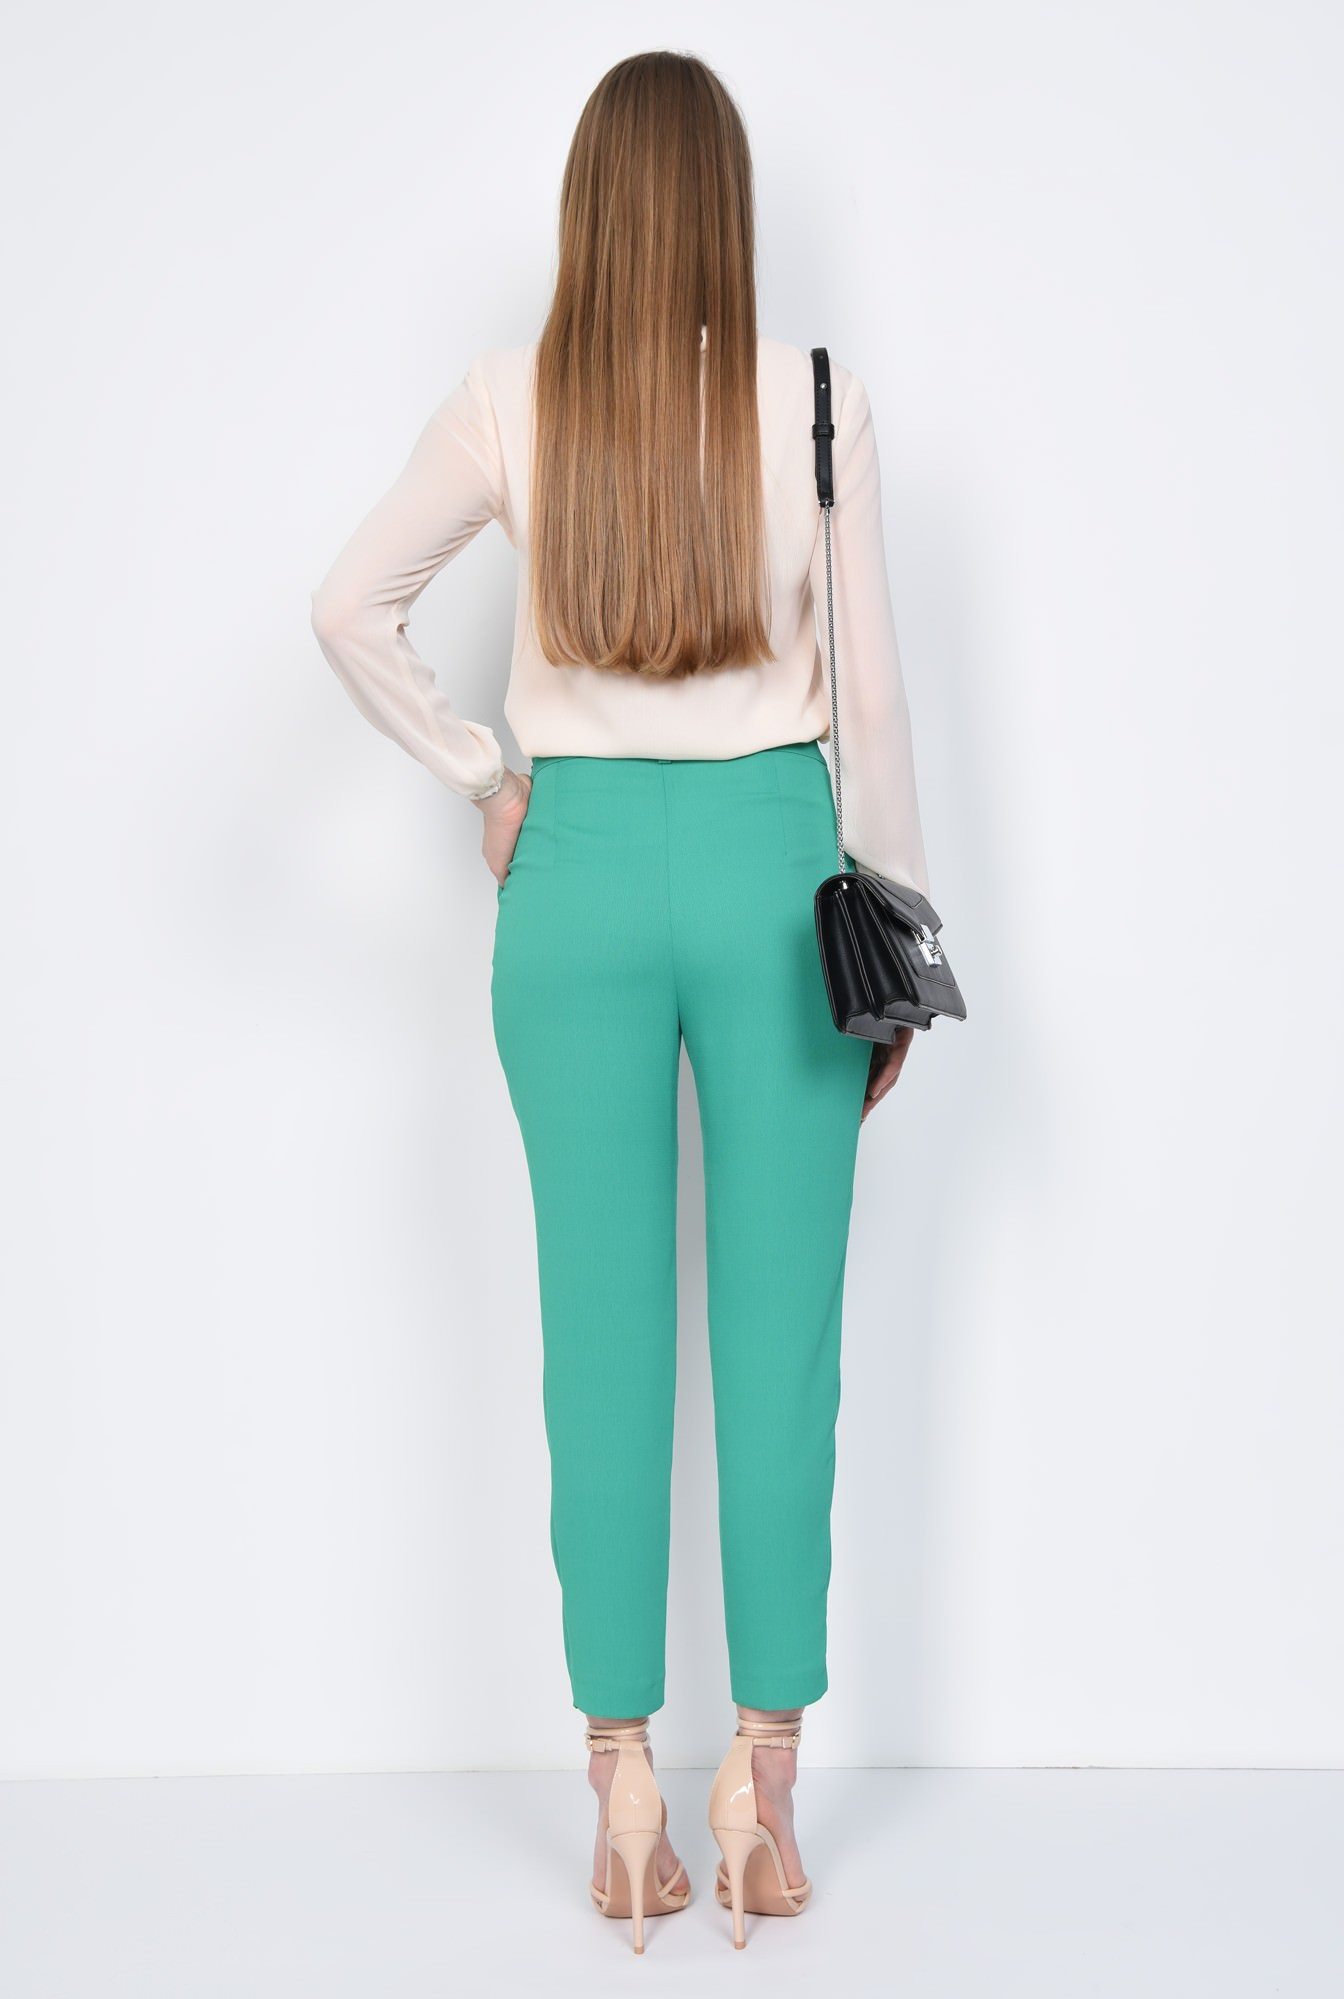 1 - PANTALON CASUAL CONIC PT 155-VERDE